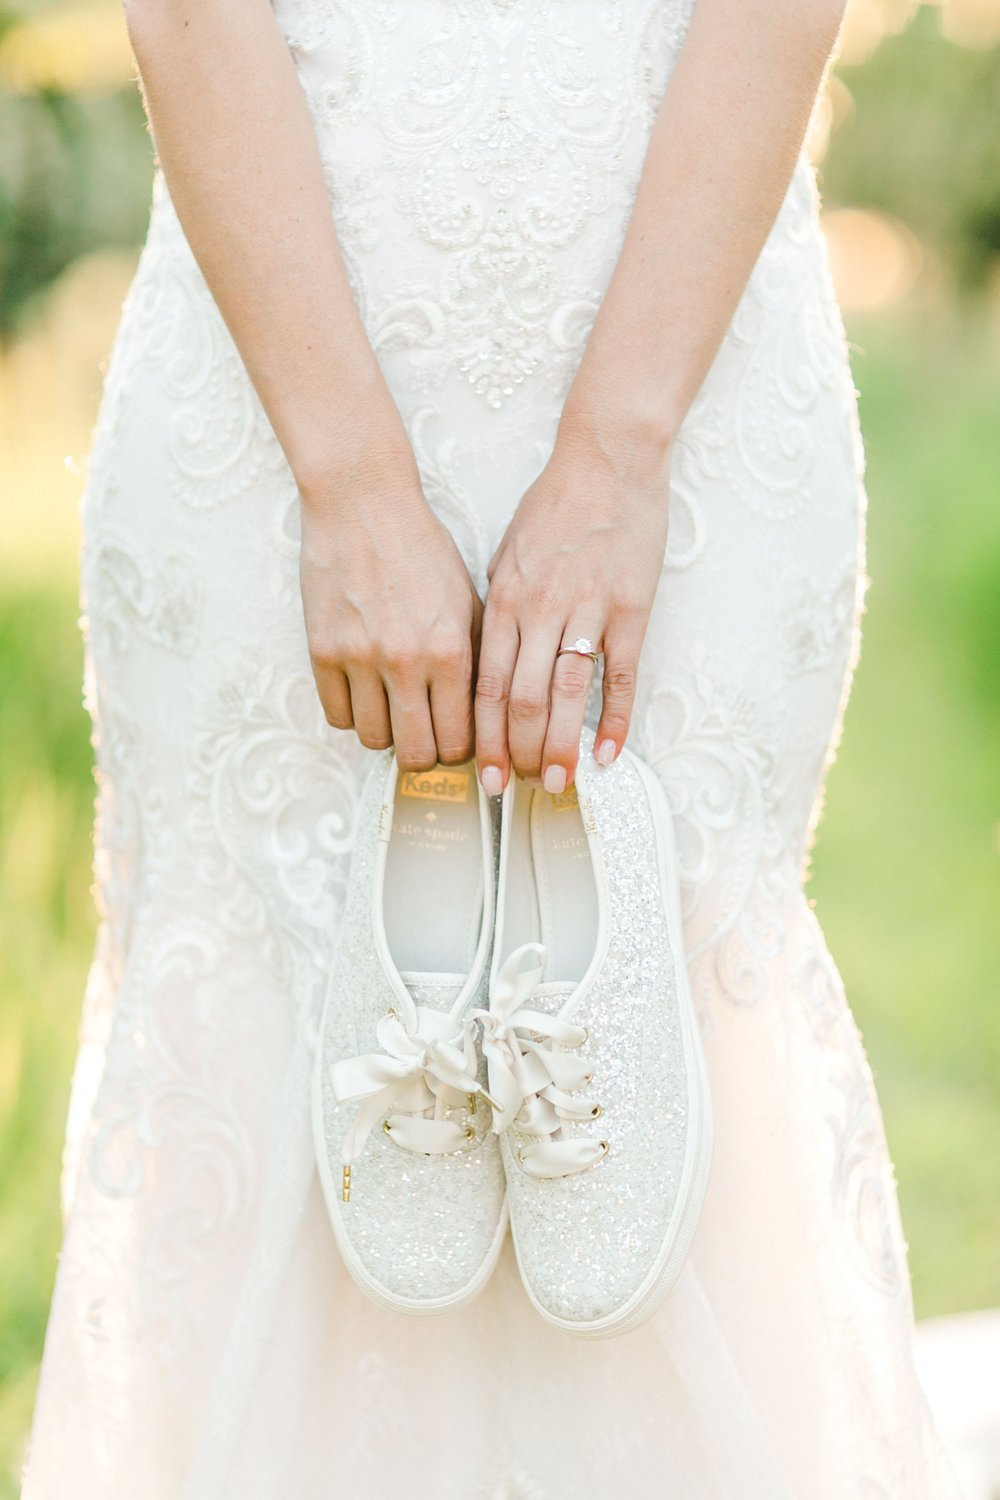 Ashley_Parr_Bridals_ALLEEJ_caprock_winery_romantic_elegant0019.jpg